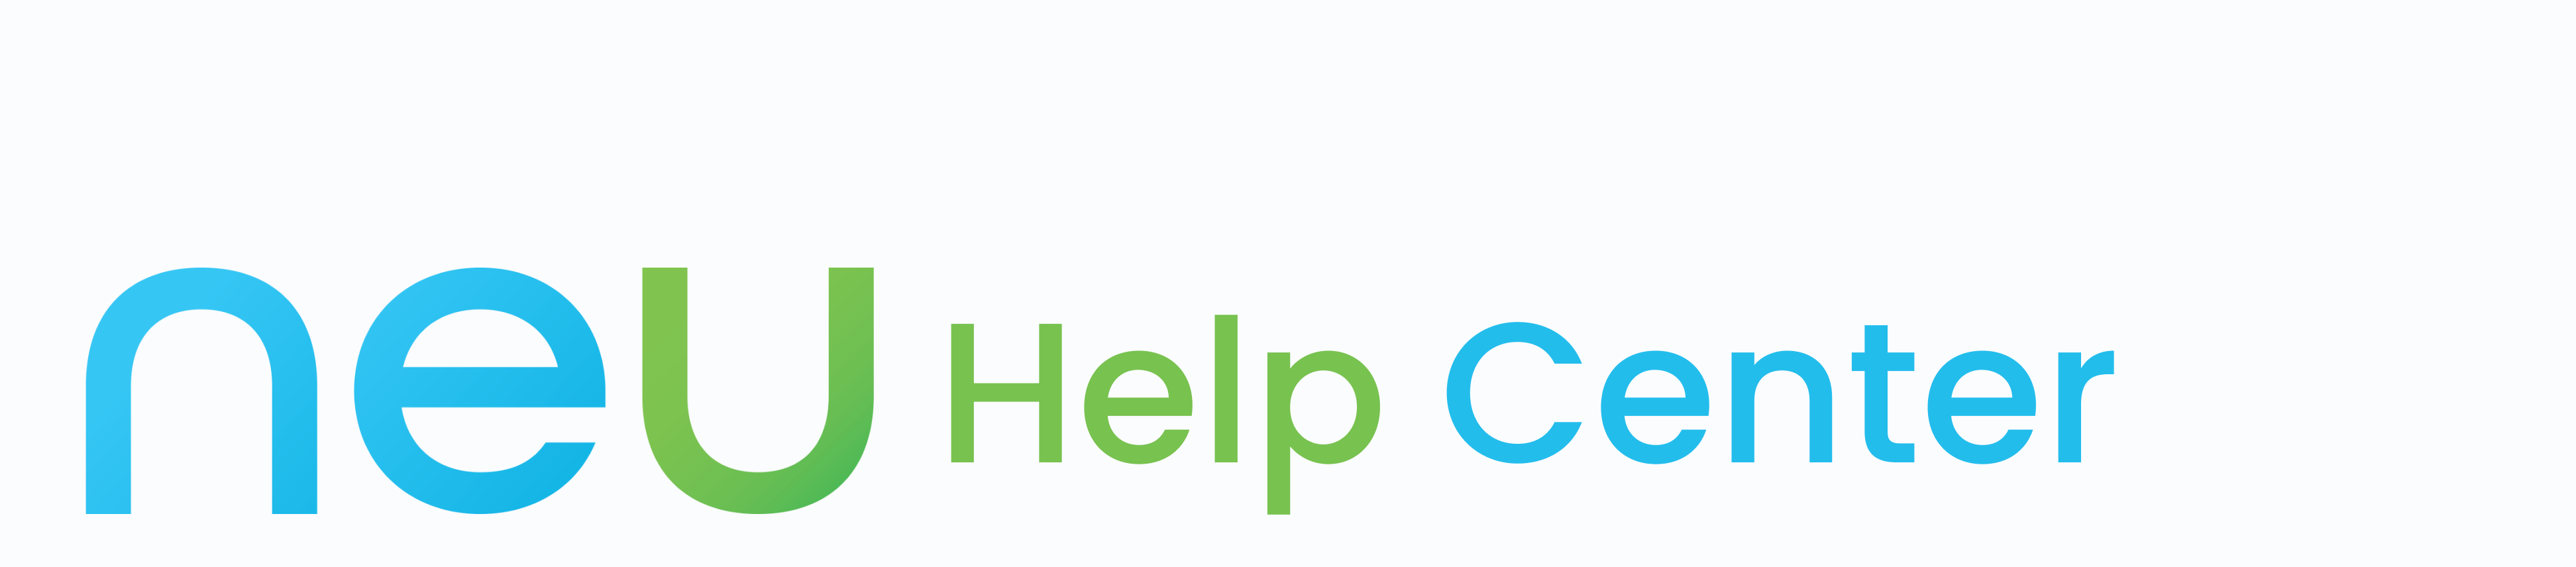 neu Help Center Help Center home page